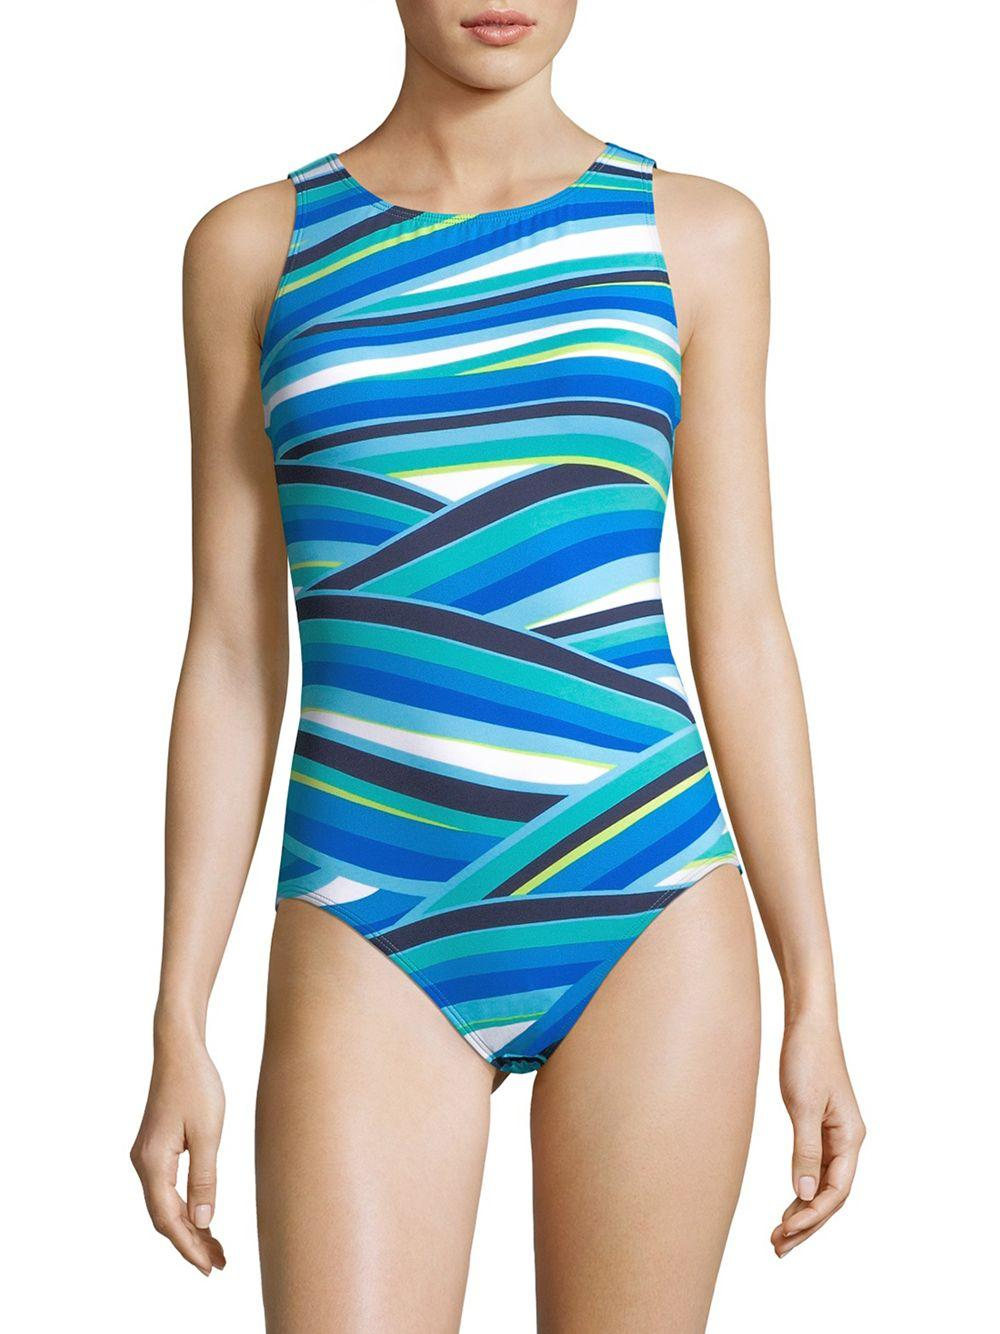 ce5af8c141 Lyst - Tommy Bahama Striped One-piece Swimsuit in Blue - Save 8%